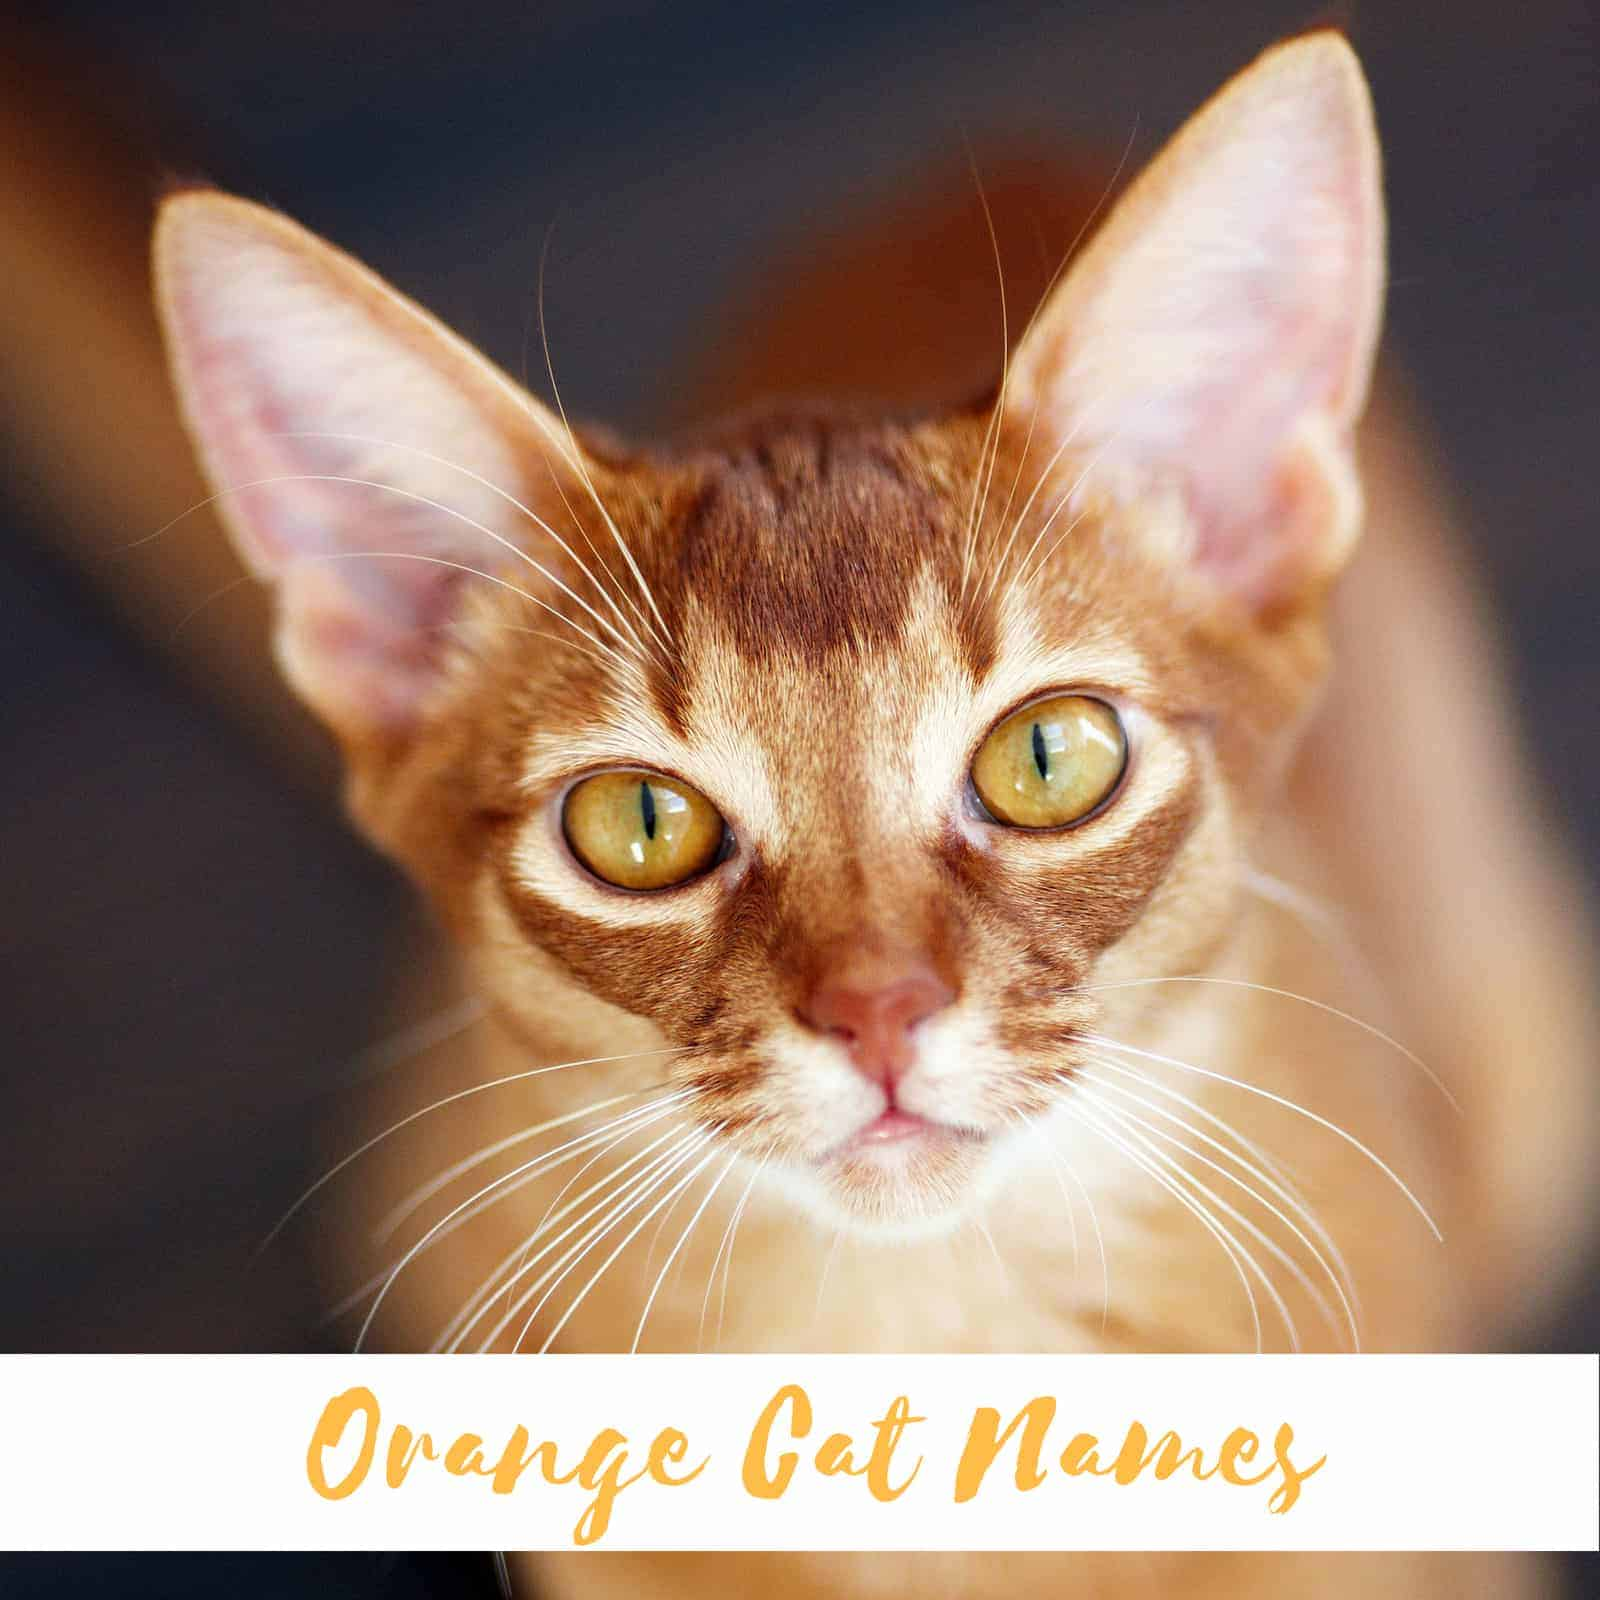 500 Orange Cat Names The Only List You Ll Need To Find The Perfect Name